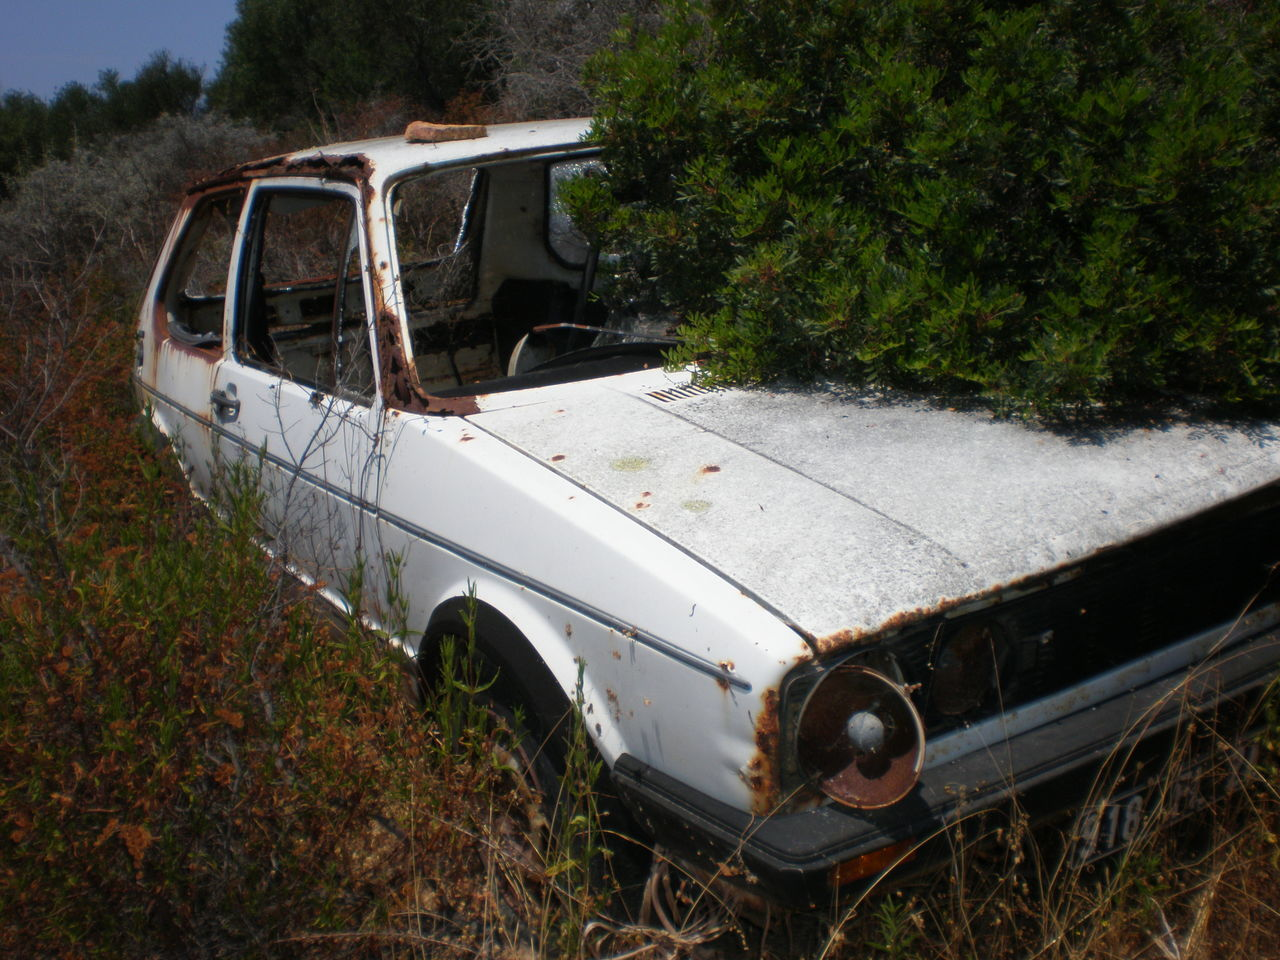 Broken Car Corse Korsika Mountain Nature Wood